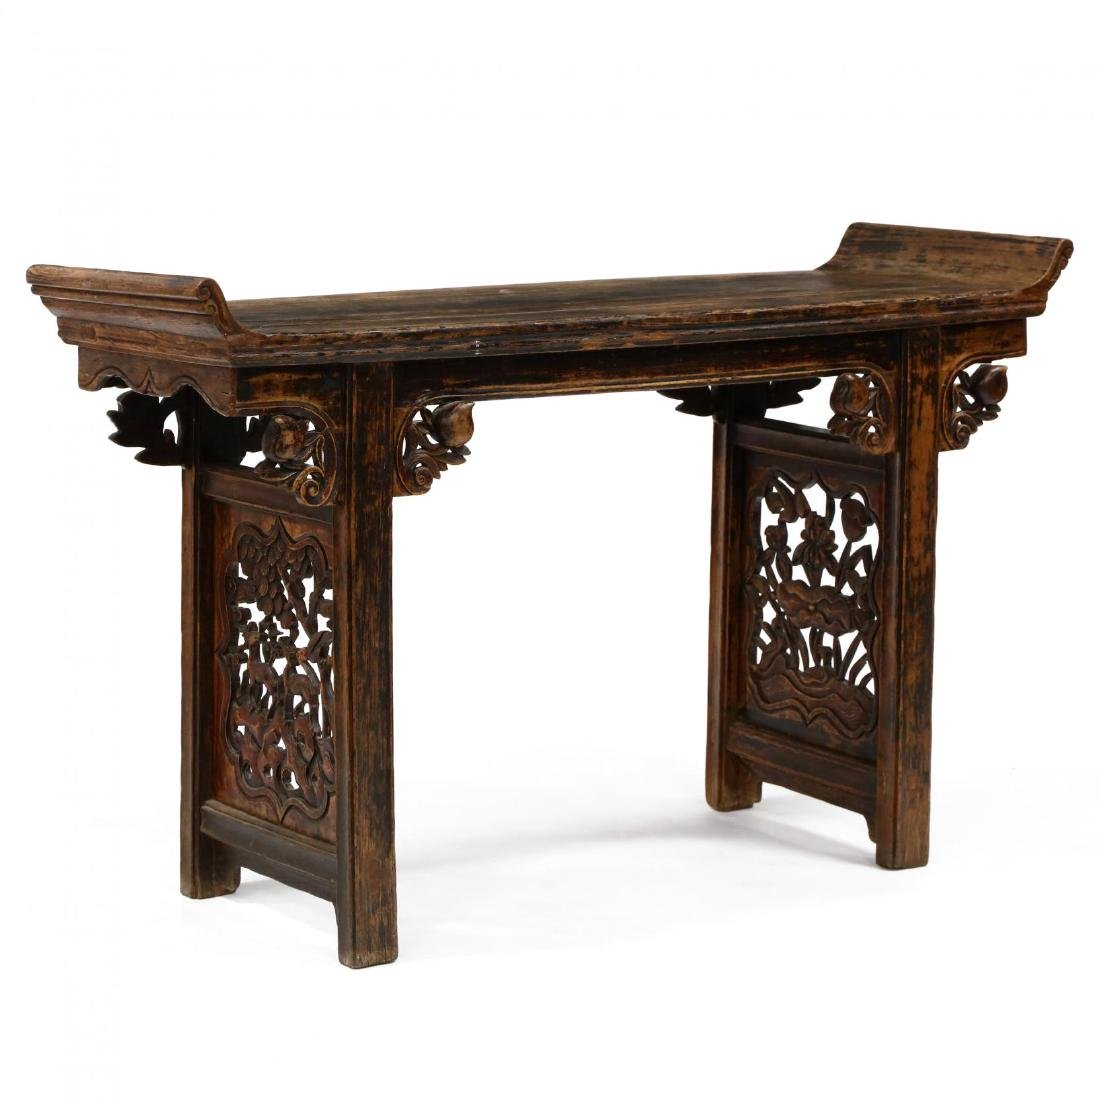 An Antique Chinese Carved Wood Altar Table